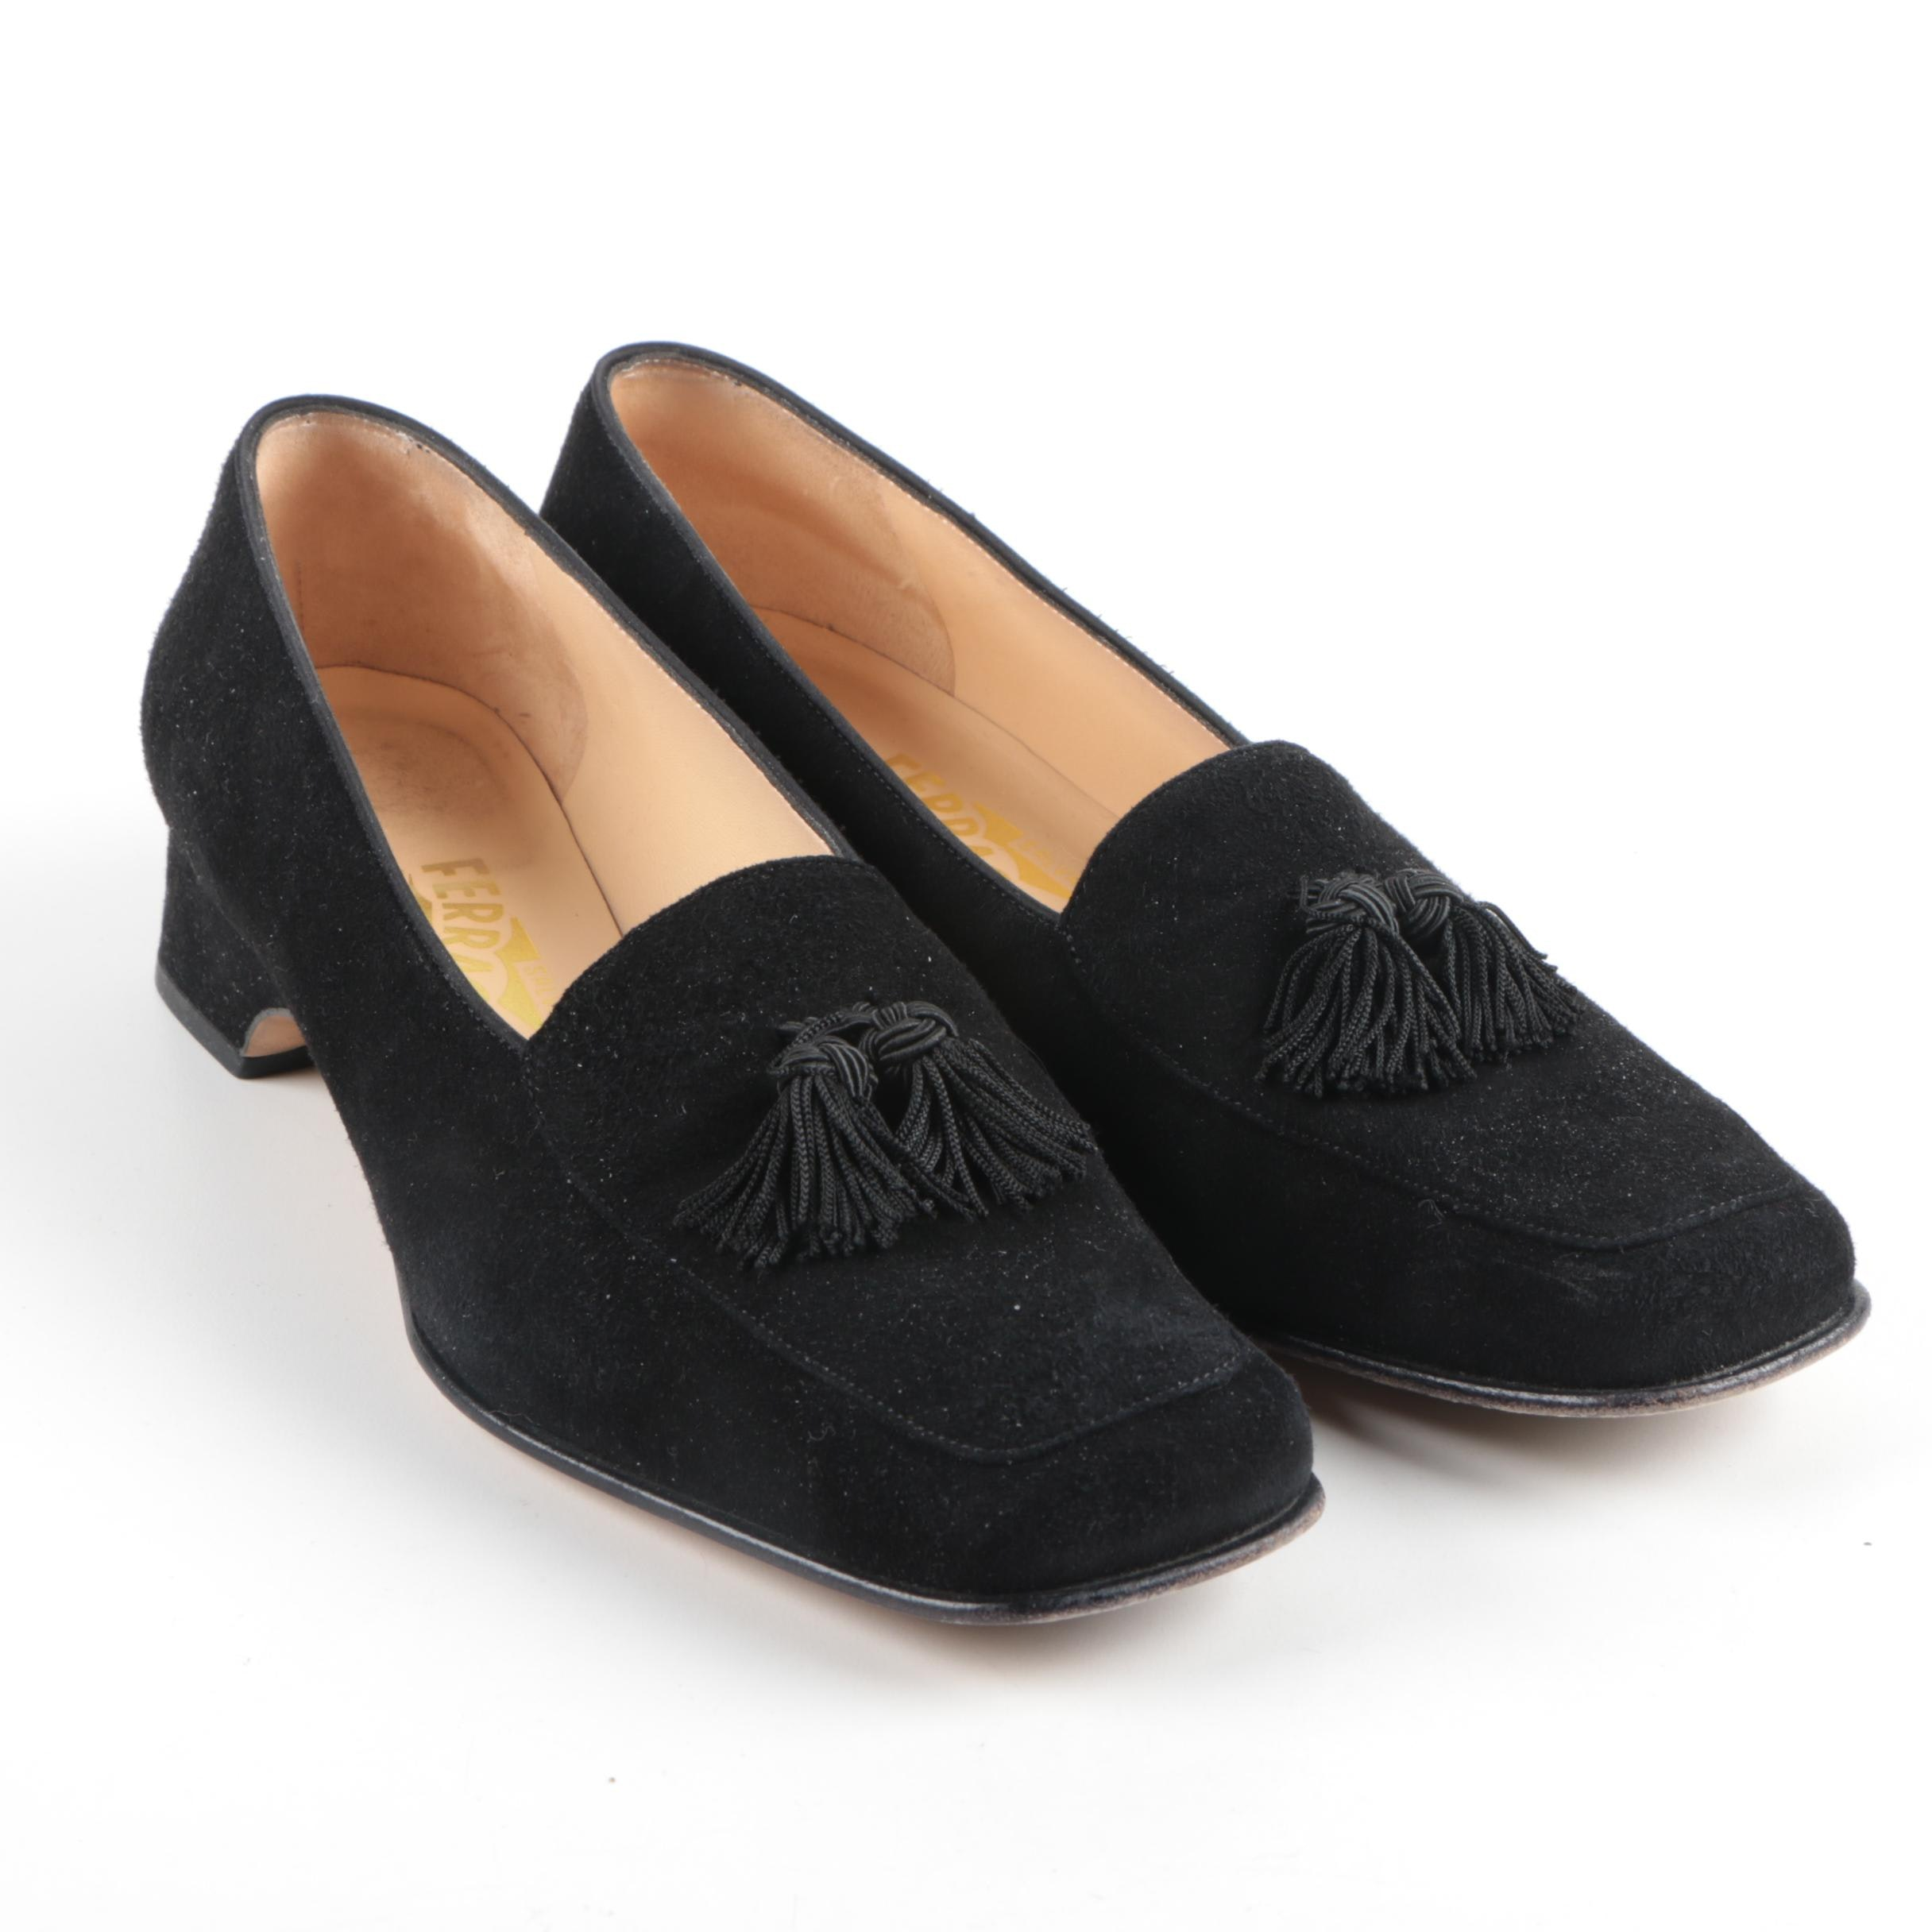 Salvatore Ferragamo Black Suede Loafers with Tassels